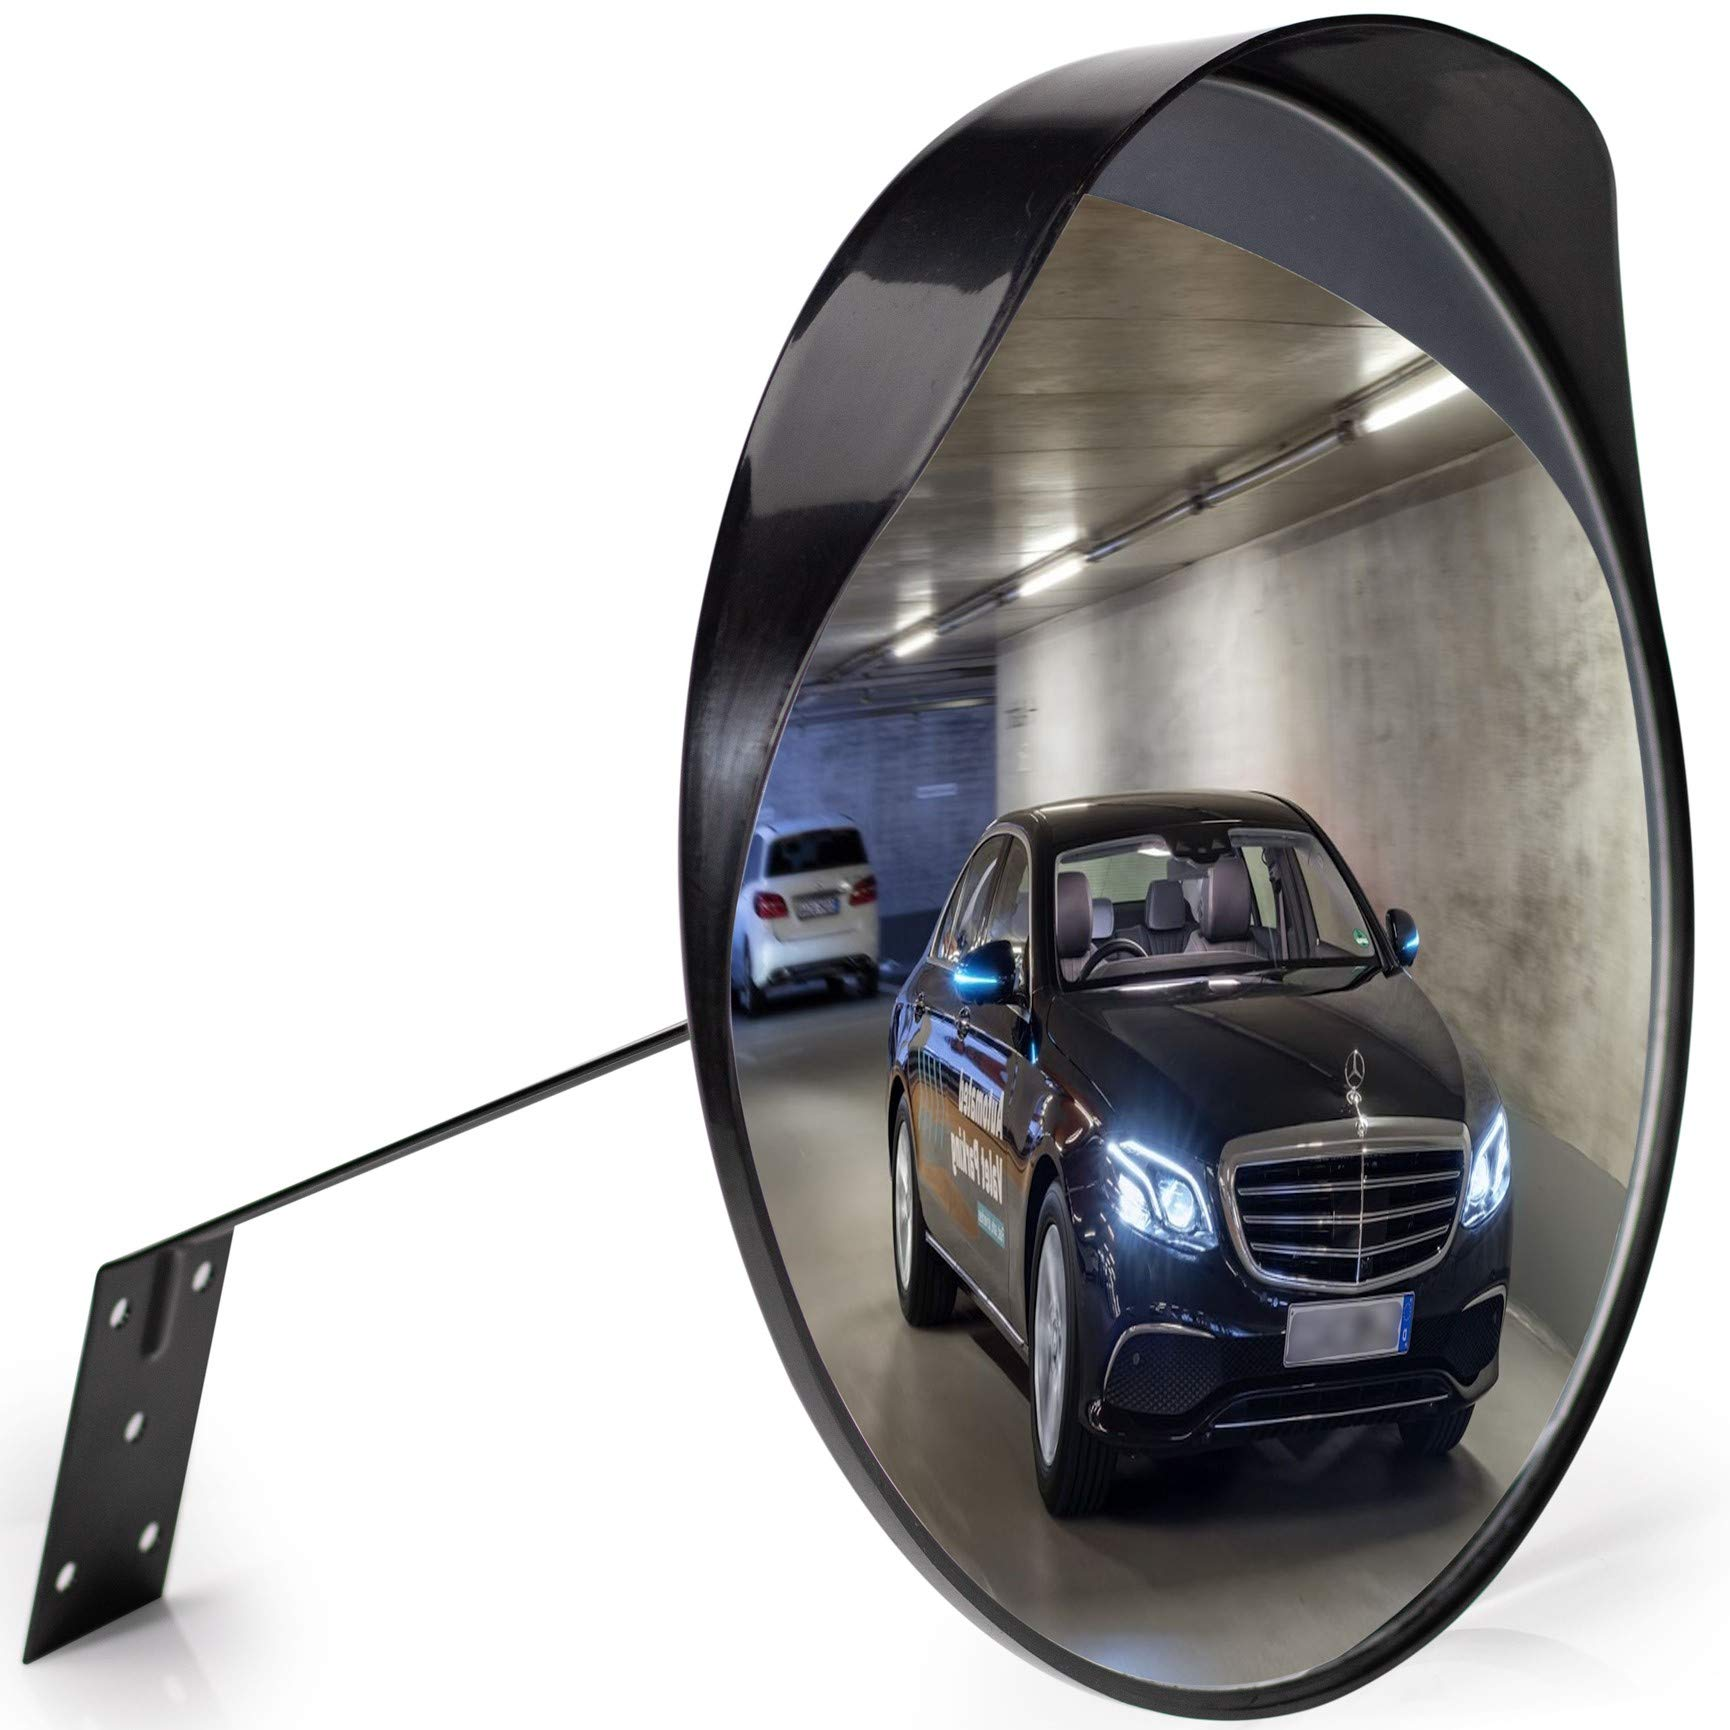 Premium Convex Mirror - Adjustable 12'' Curved Security Mirror for Indoor & Outdoor use - Extends your field of view to increase Safety